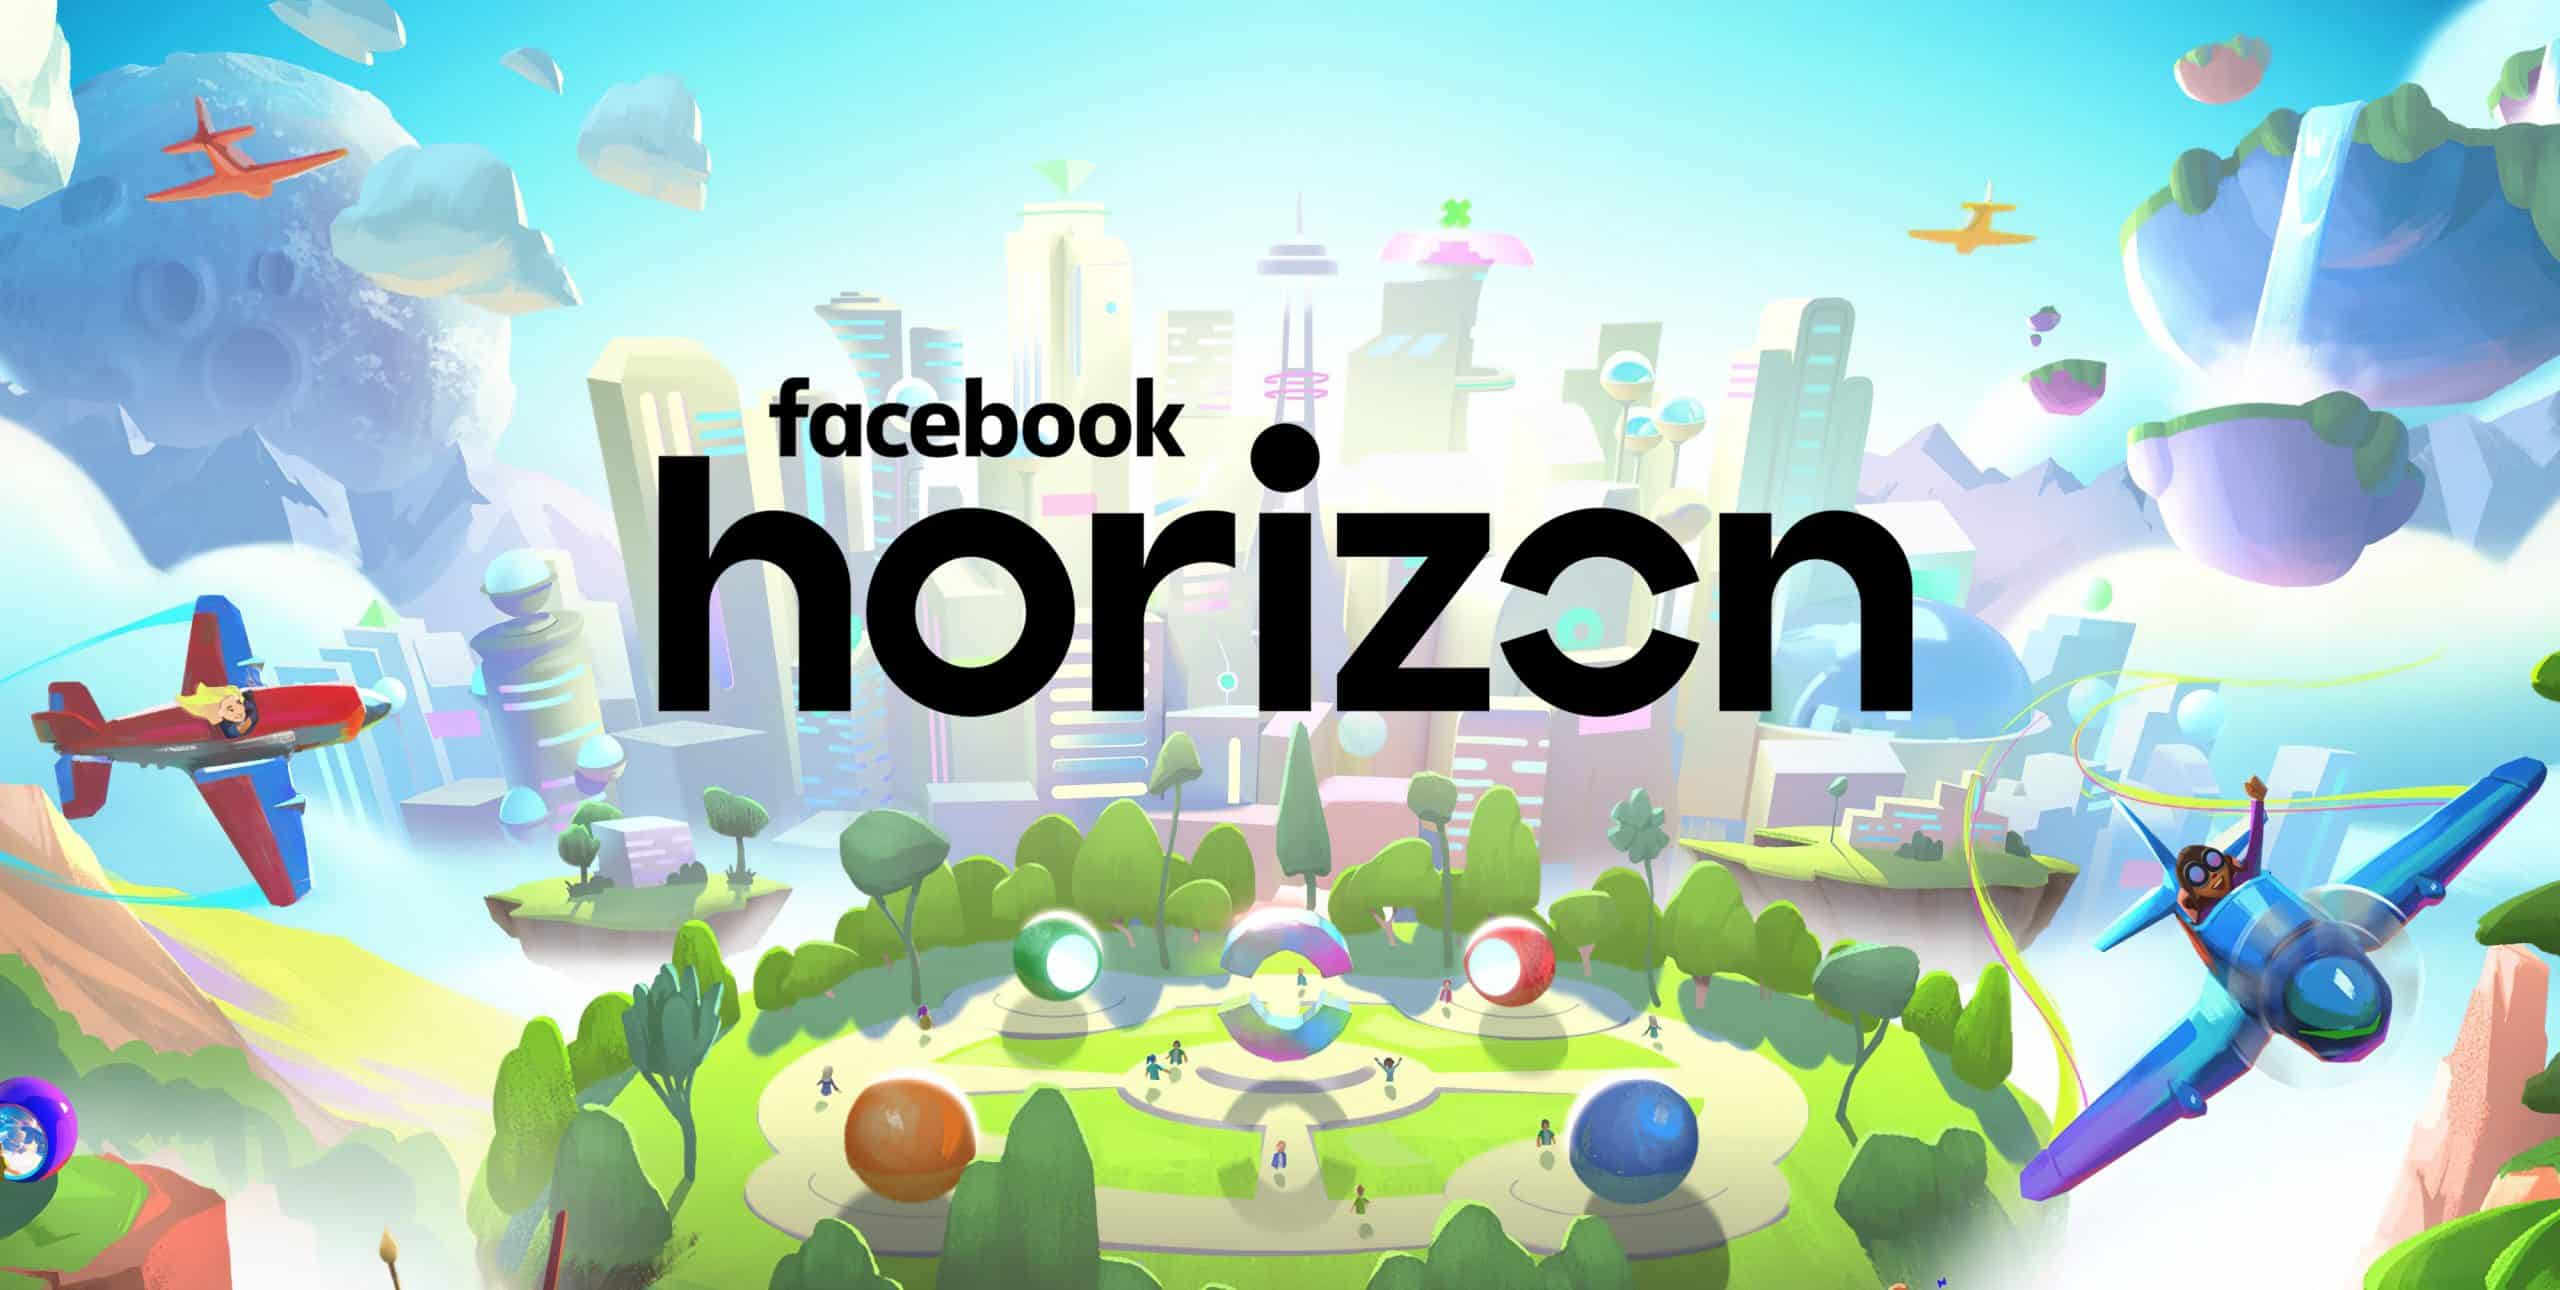 Image of Facebook Horizon as an online world which will have a heavy emphasis on creating virtual groups and communities